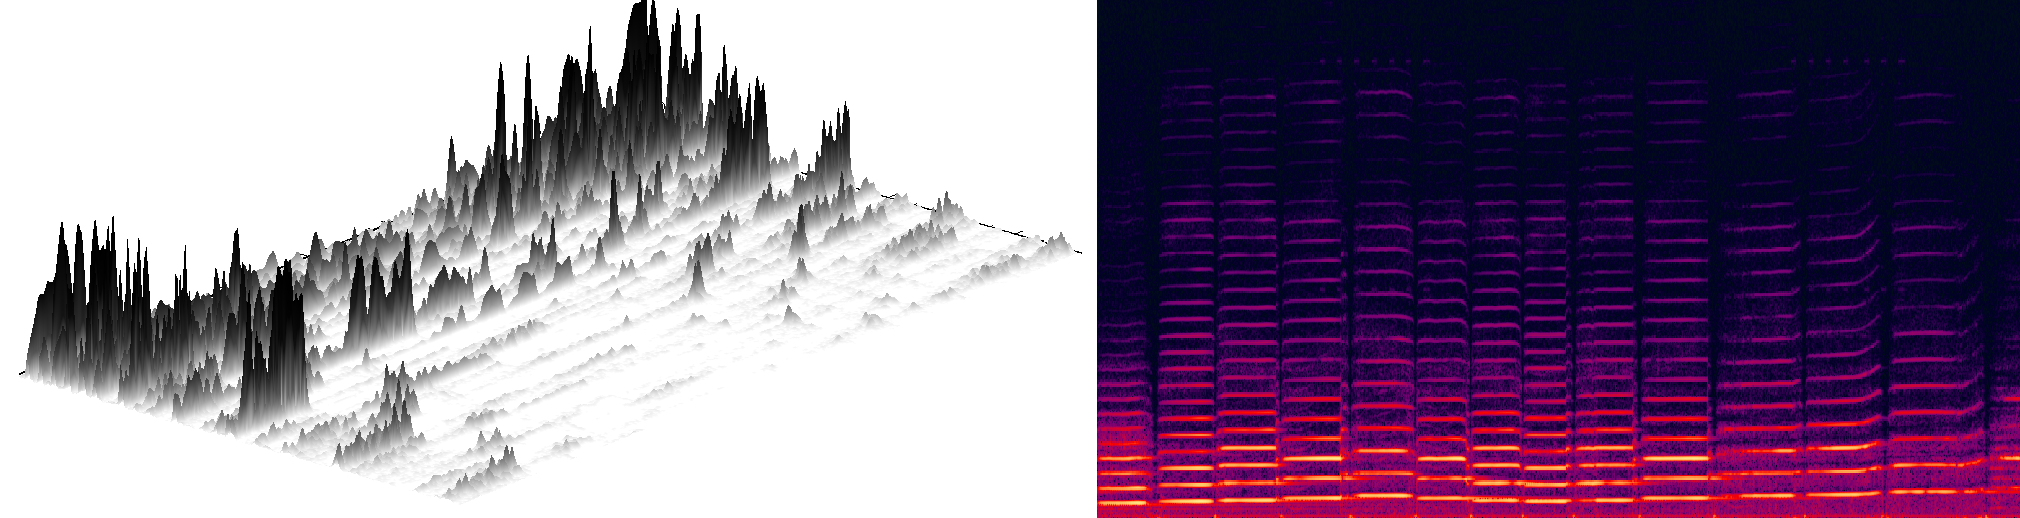 A 3D surface spectrogram generated from a piece of music (left), and the s  pectrogram of violin music (right).   The pattern generated is unique like a fingerprint.   Debianux/Wikimedia Commons  (CC BY-SA 3.0); Omegatron/Wikimedia Commons  (CC BY-SA 3.0)